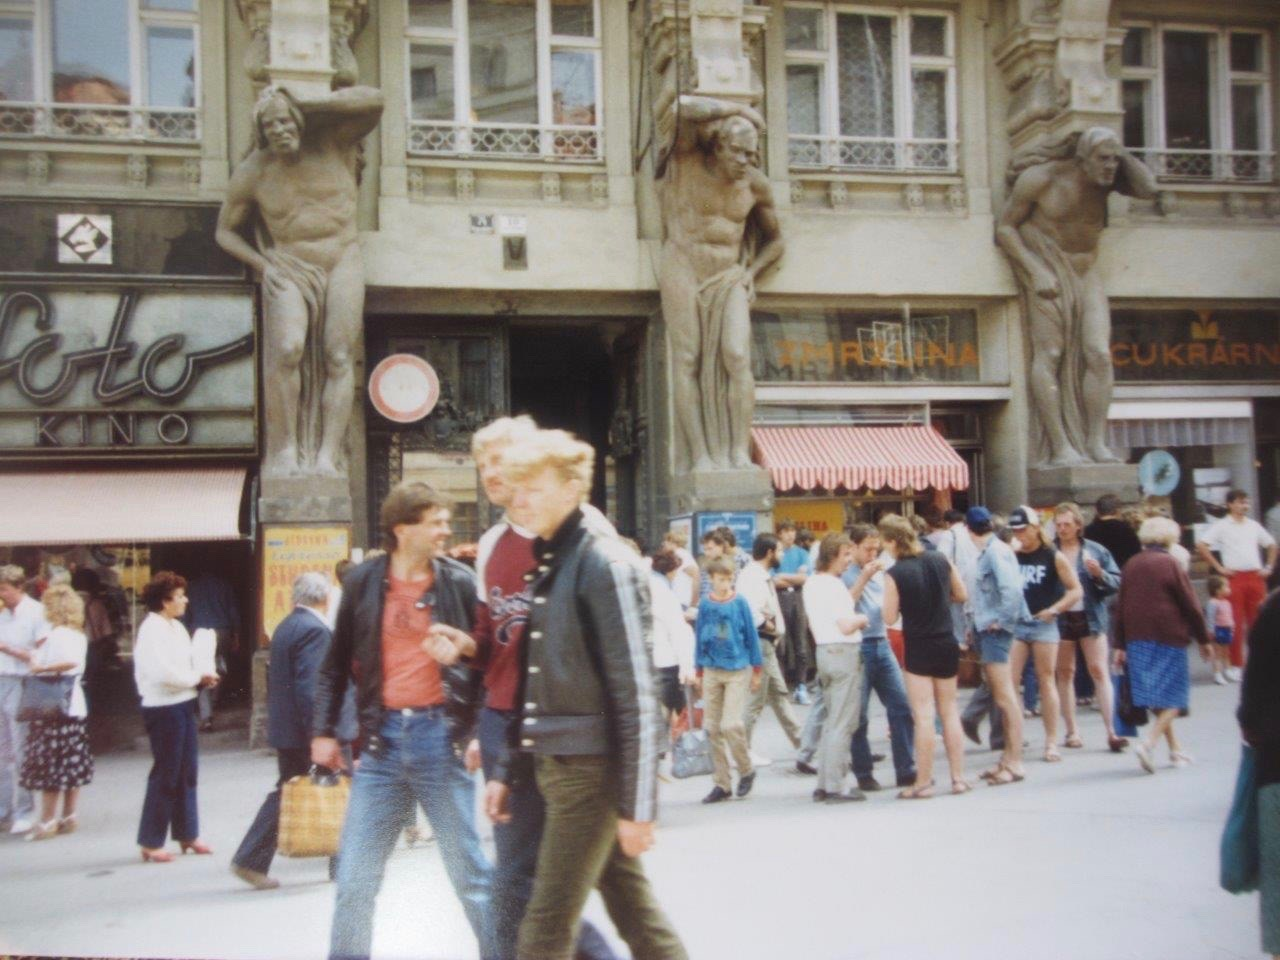 Street scene from central Brno, Czech Republic, in August 1988.